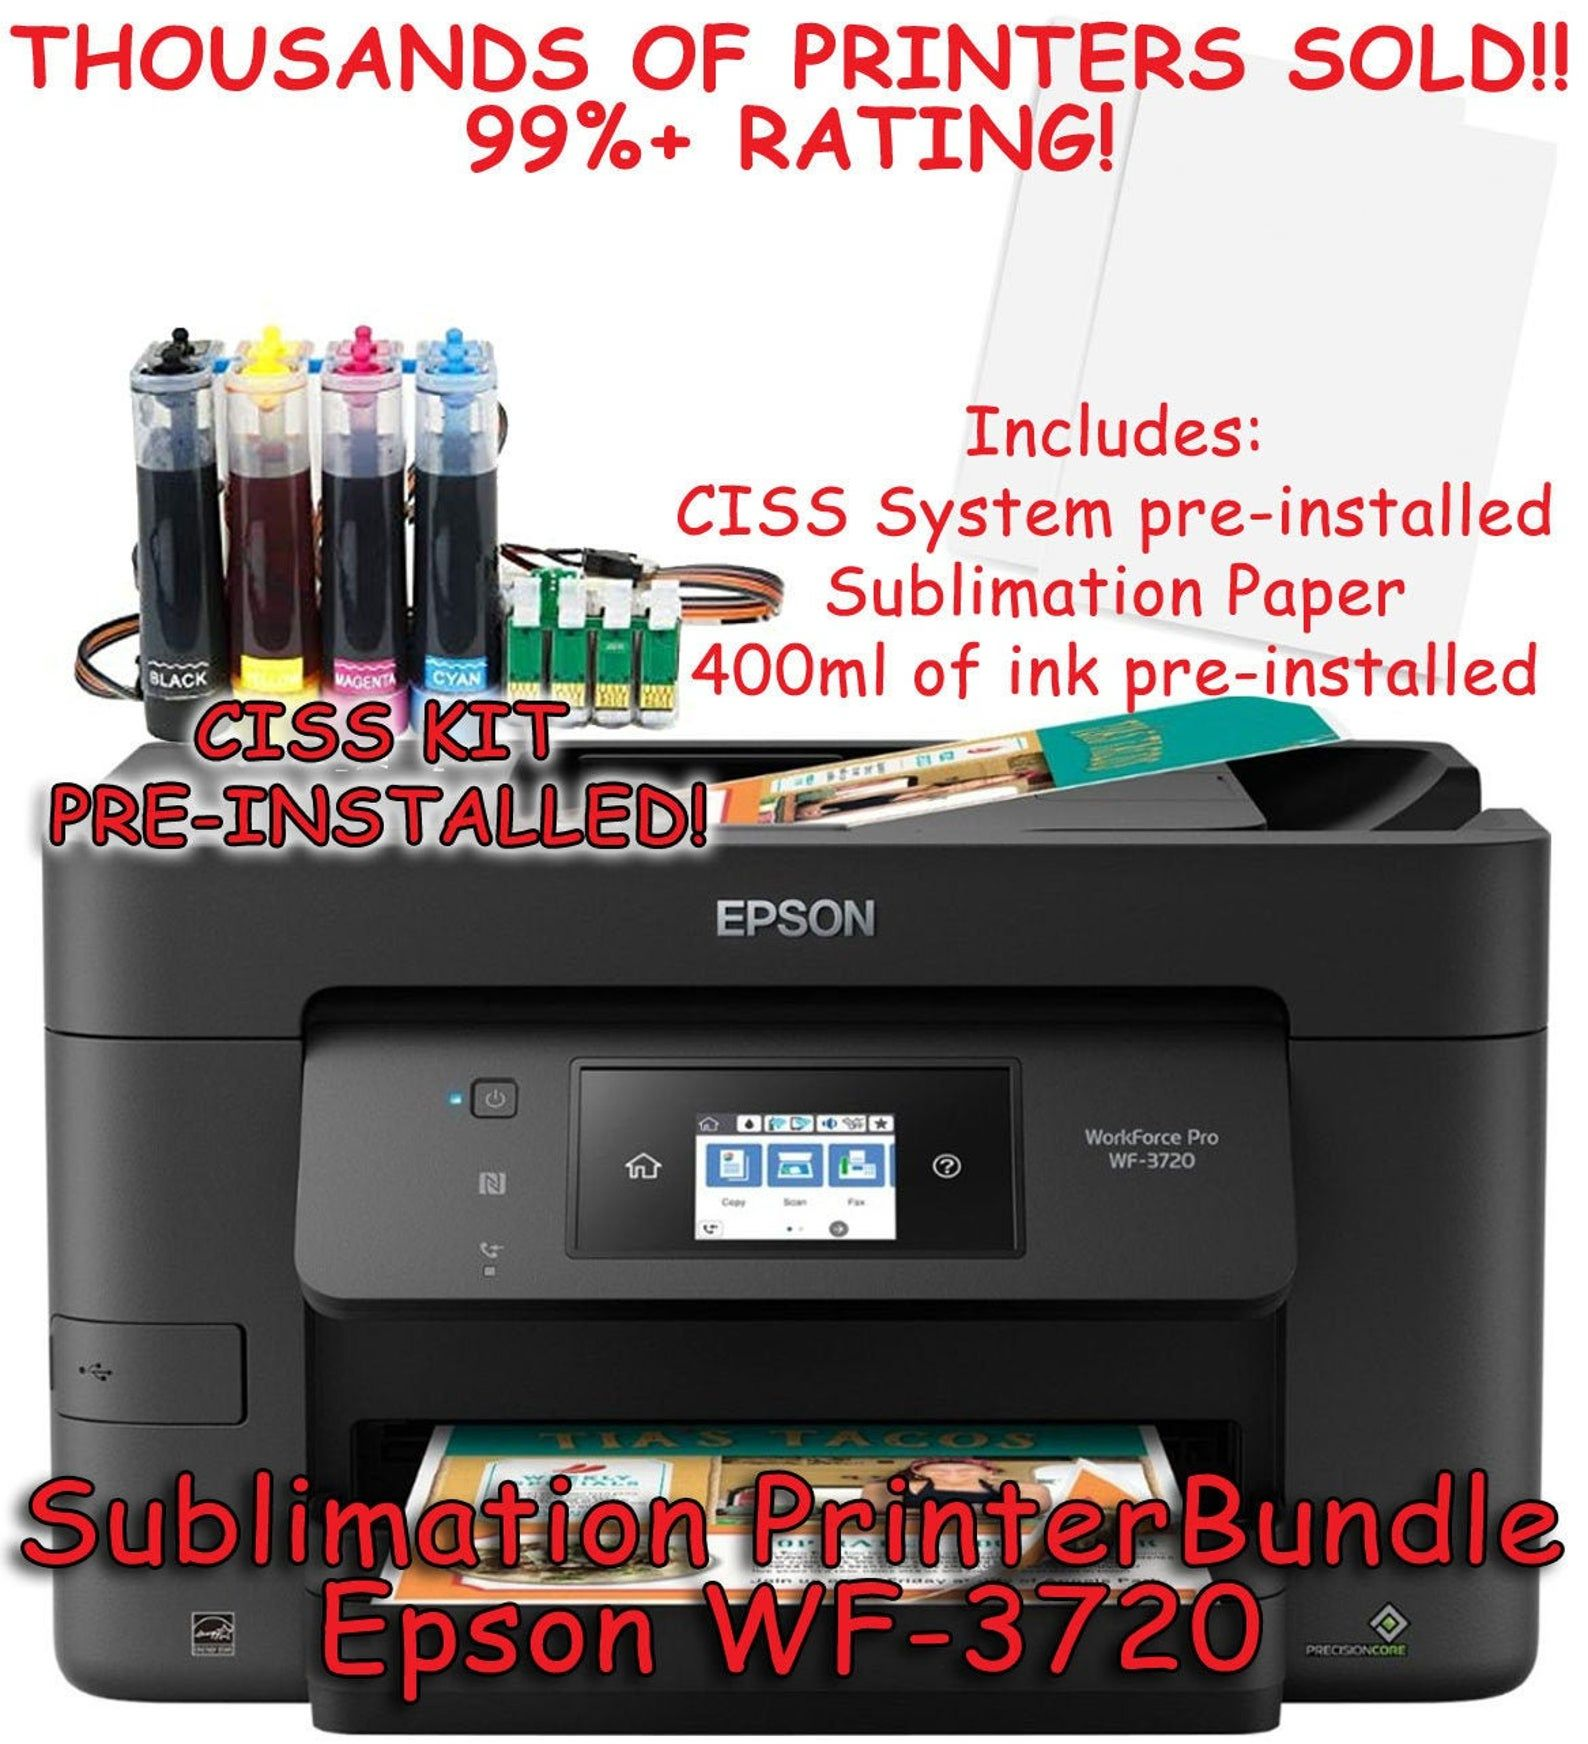 Epson Wf 3720 Chipless Sublimation Printer Bundle With Ciss Etsy Tshirt Printing Business Sublimation Printers Printing Business